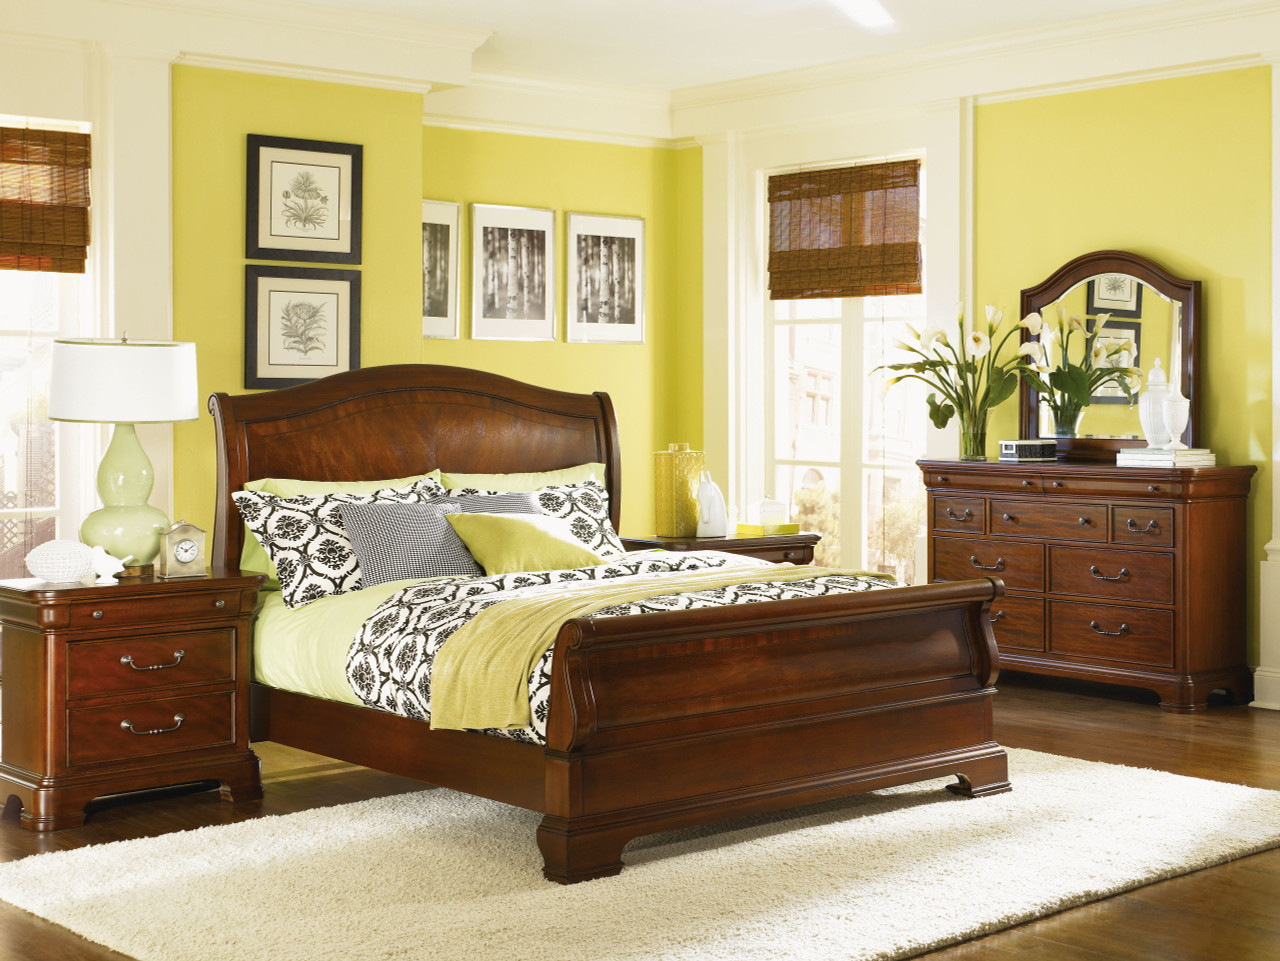 Picture of: Buy Evolution Sleigh Bed Queen On Sale Near Houston Friendswood League City Starfine Furniture Mattress